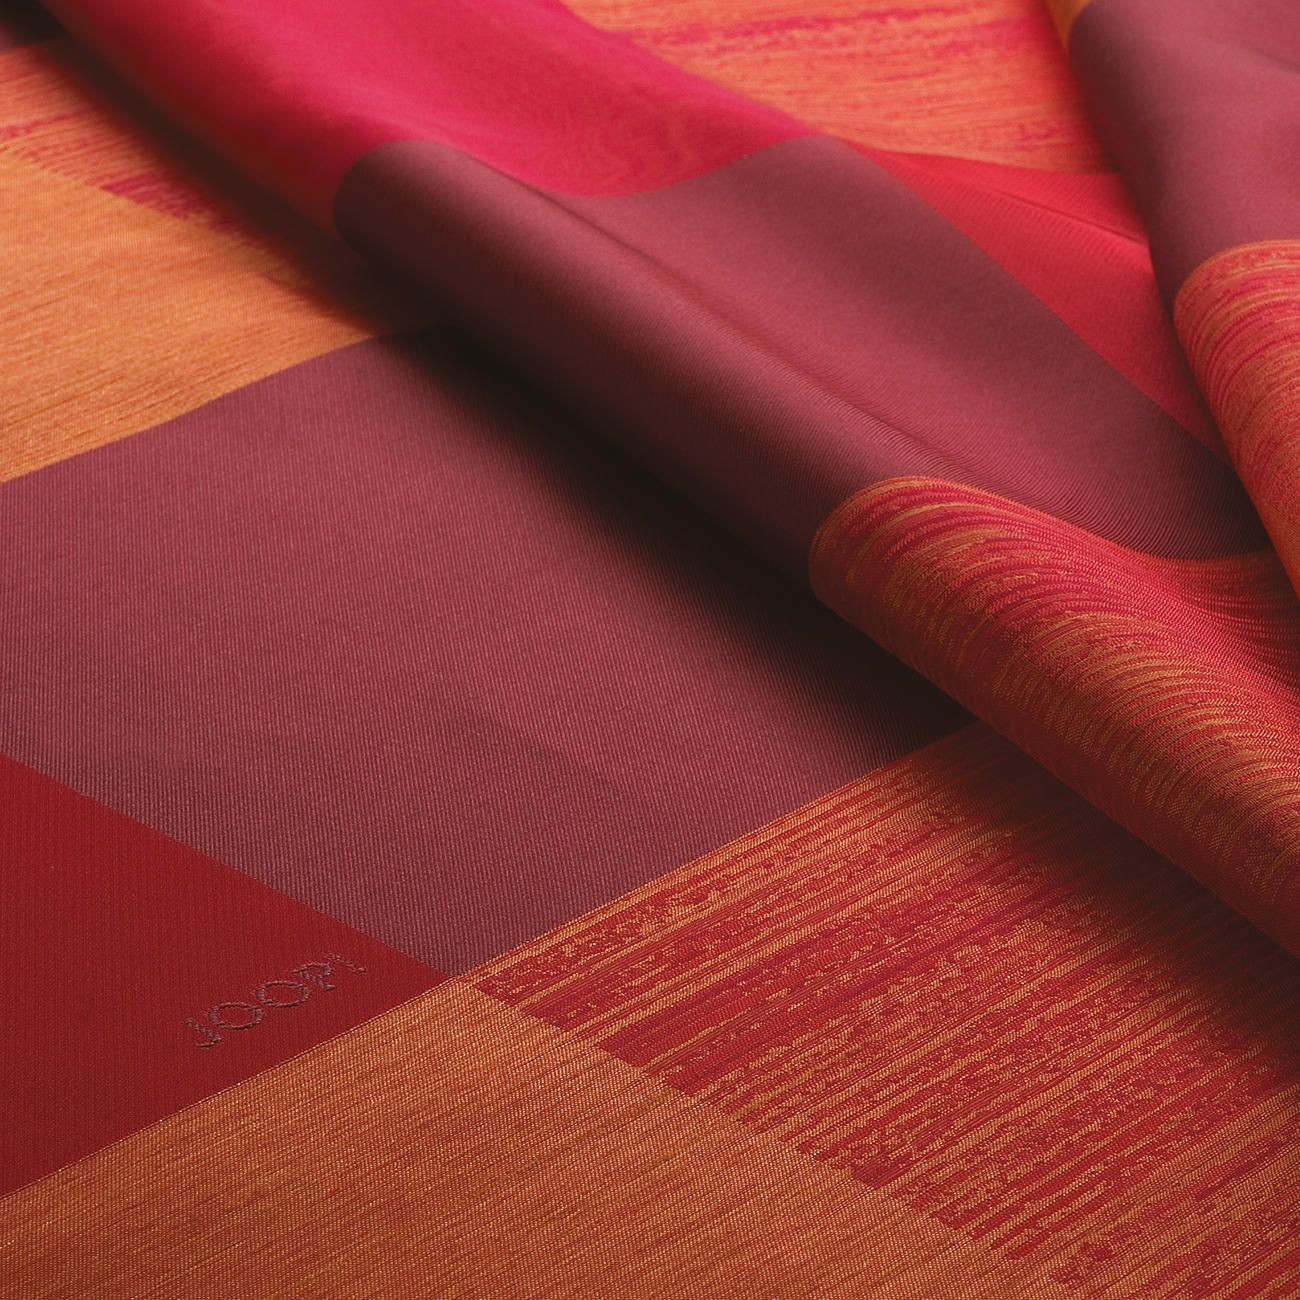 Vorhänge Weinrot Weinrot Terracotta Curtains Curtains Und Cinnamon Sticks